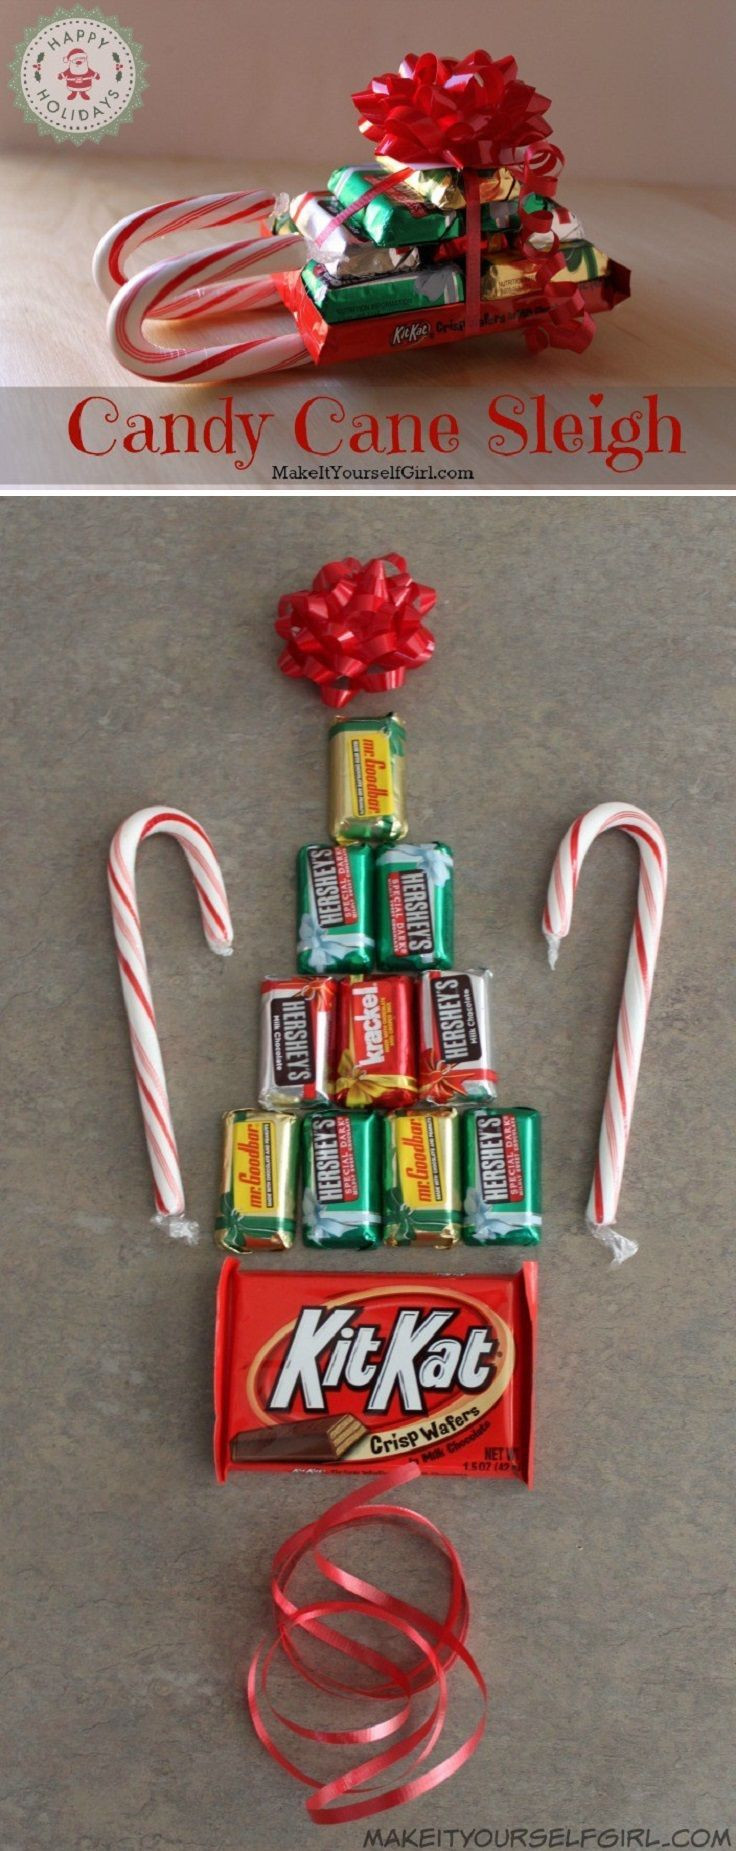 Christmas Candy Craft Ideas  Best 25 Christmas party favors ideas on Pinterest